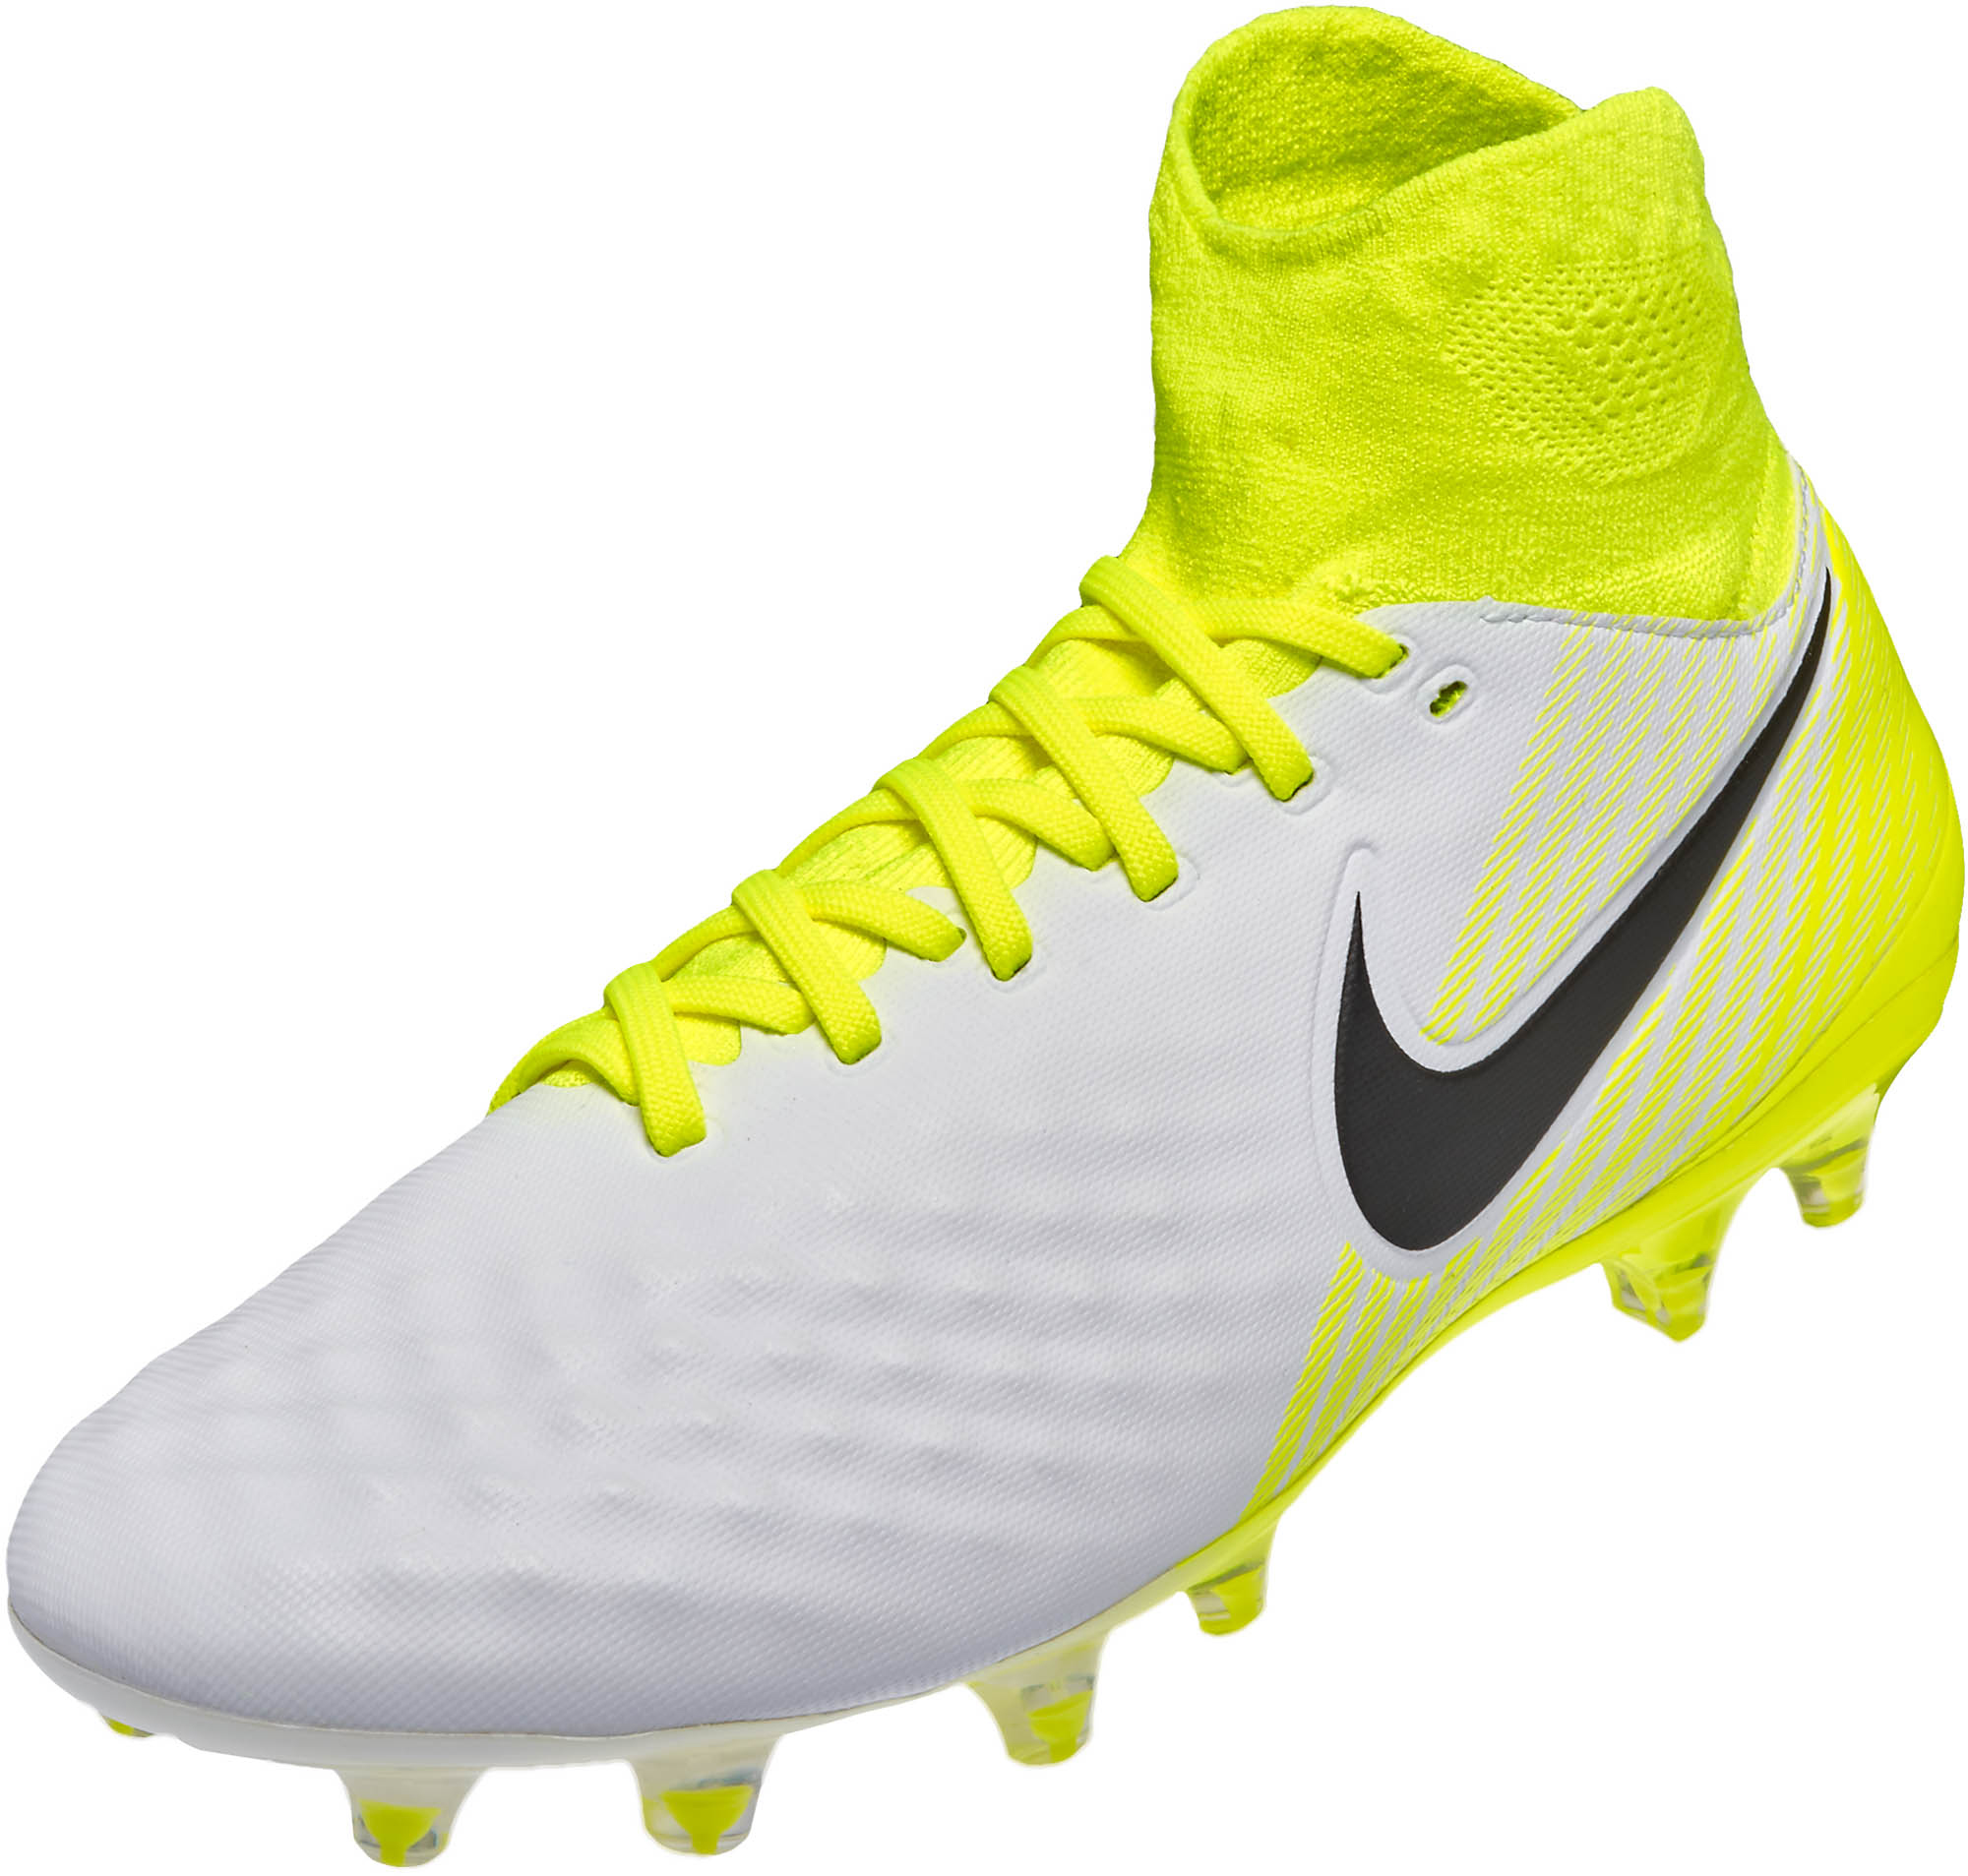 white yellow mens nike magista cleats shoes